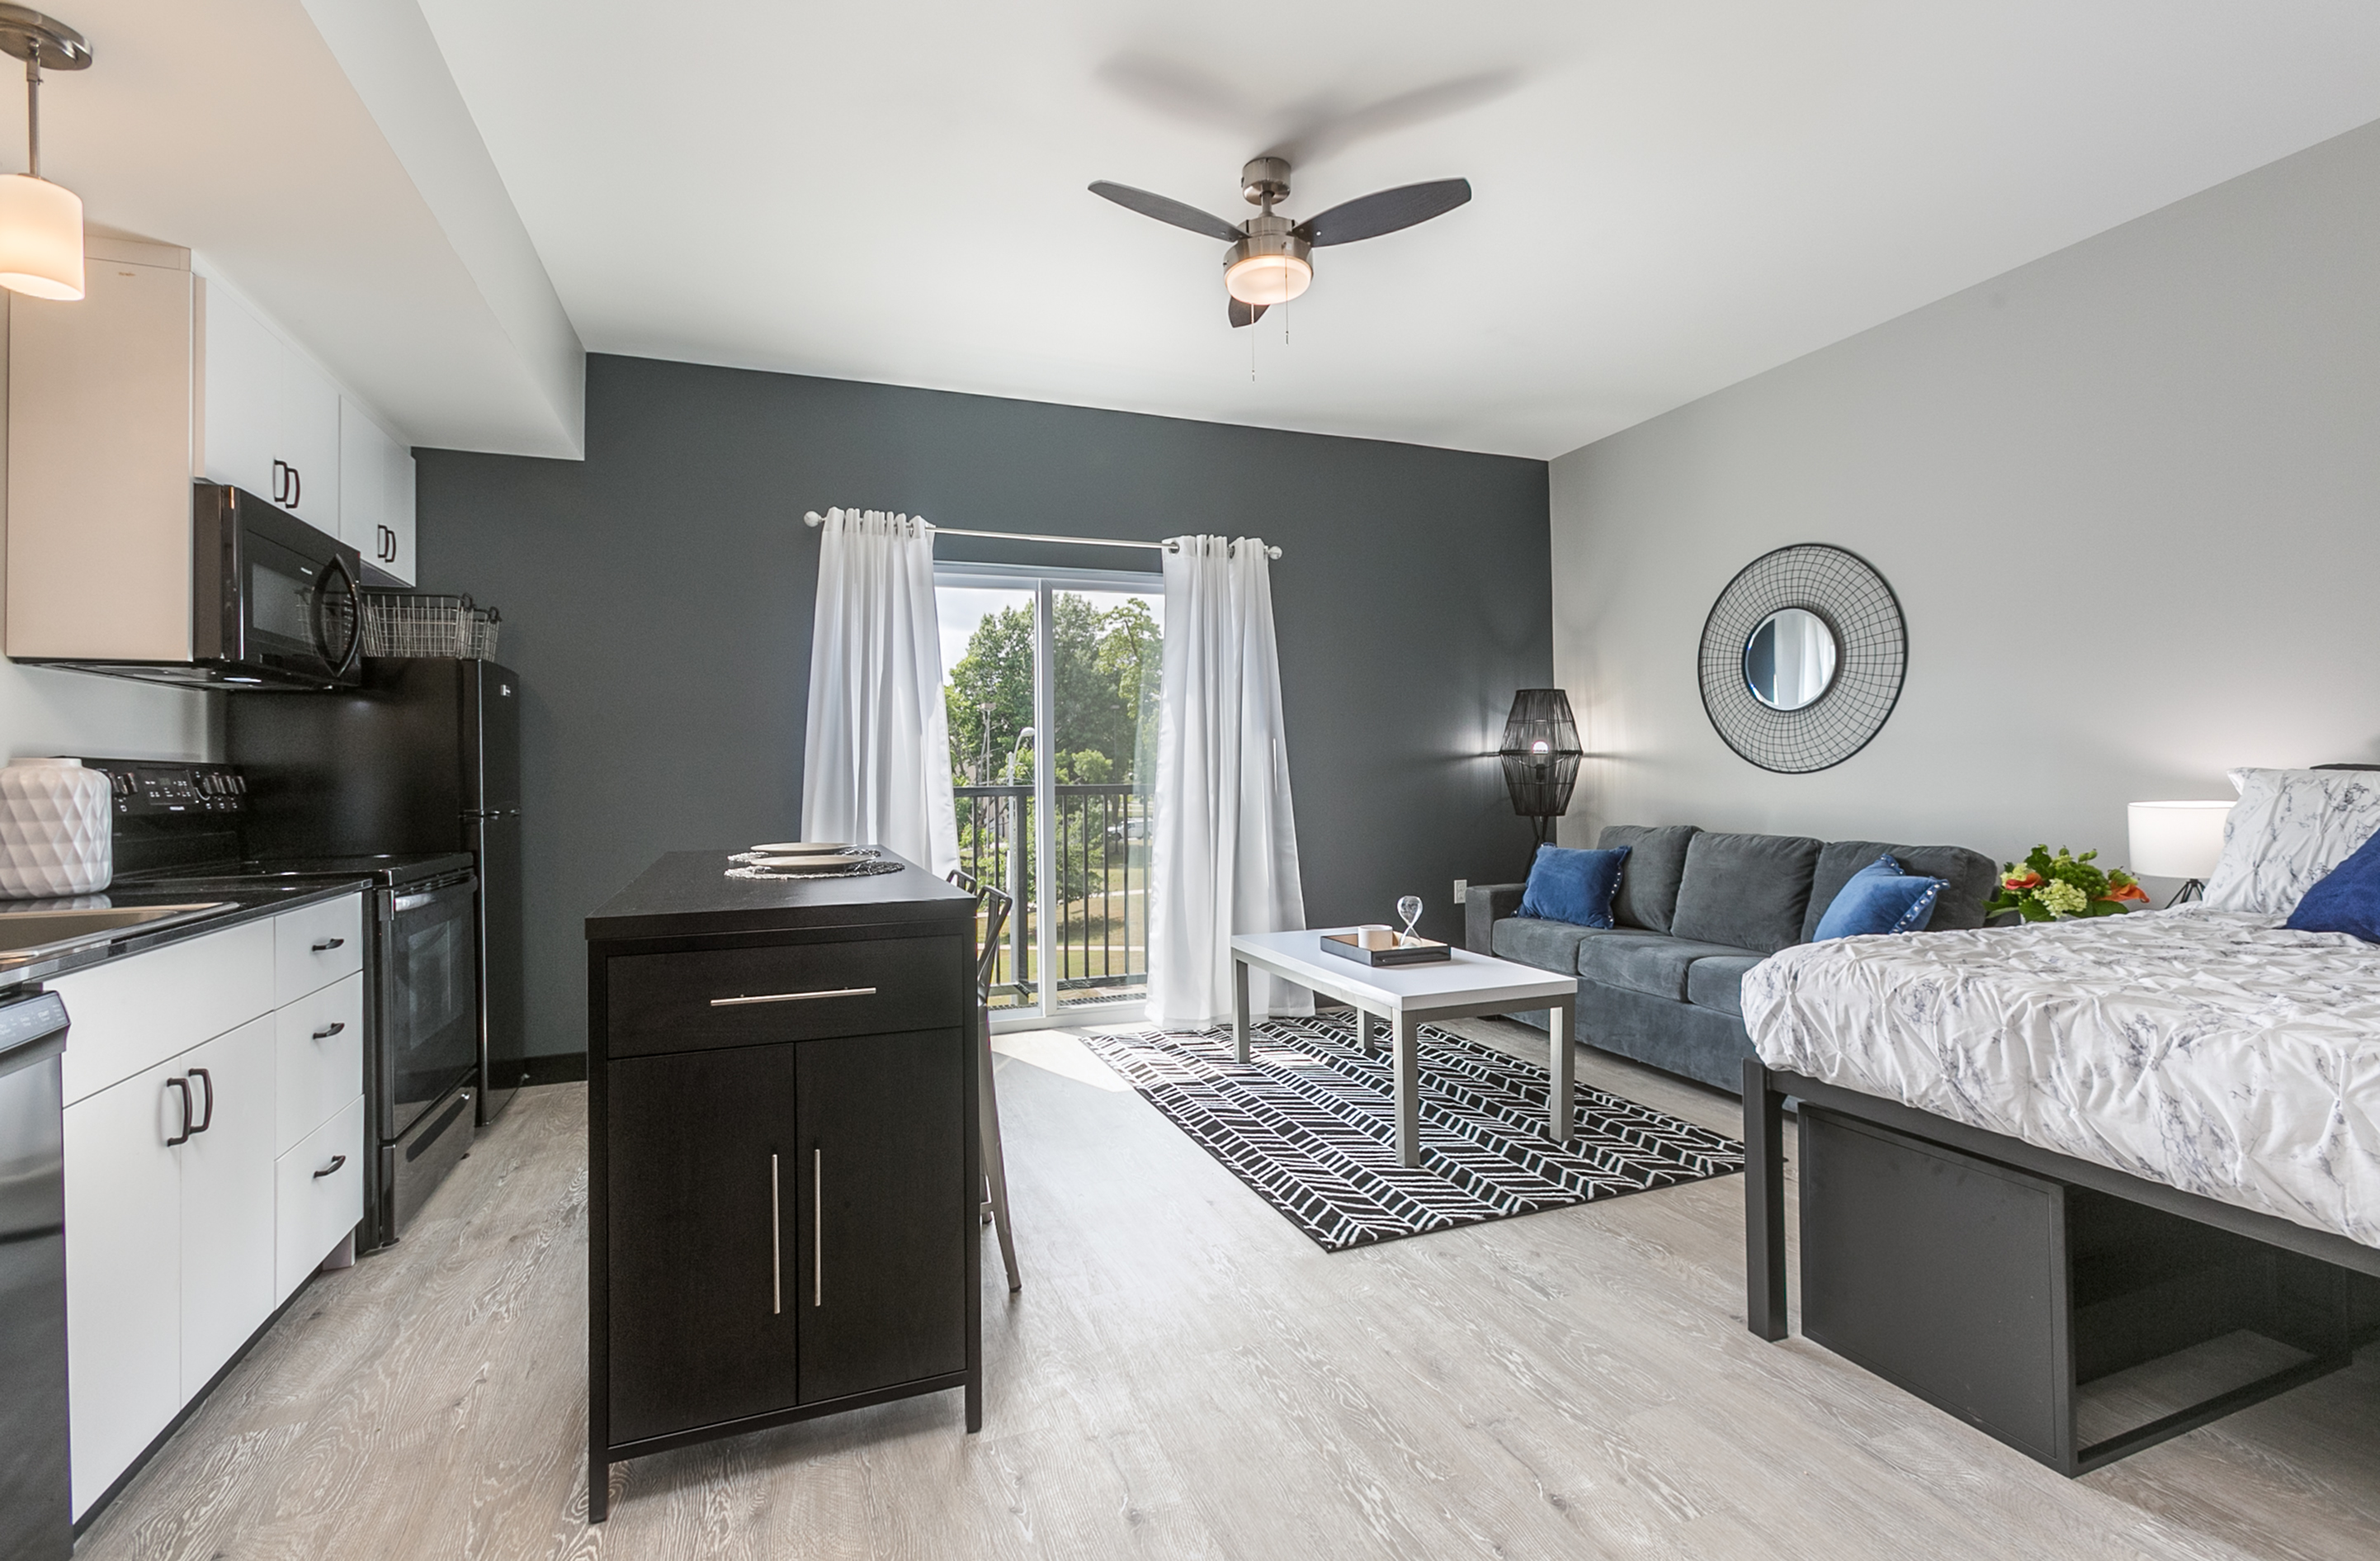 Studio apartment with bed and couch near kitchen